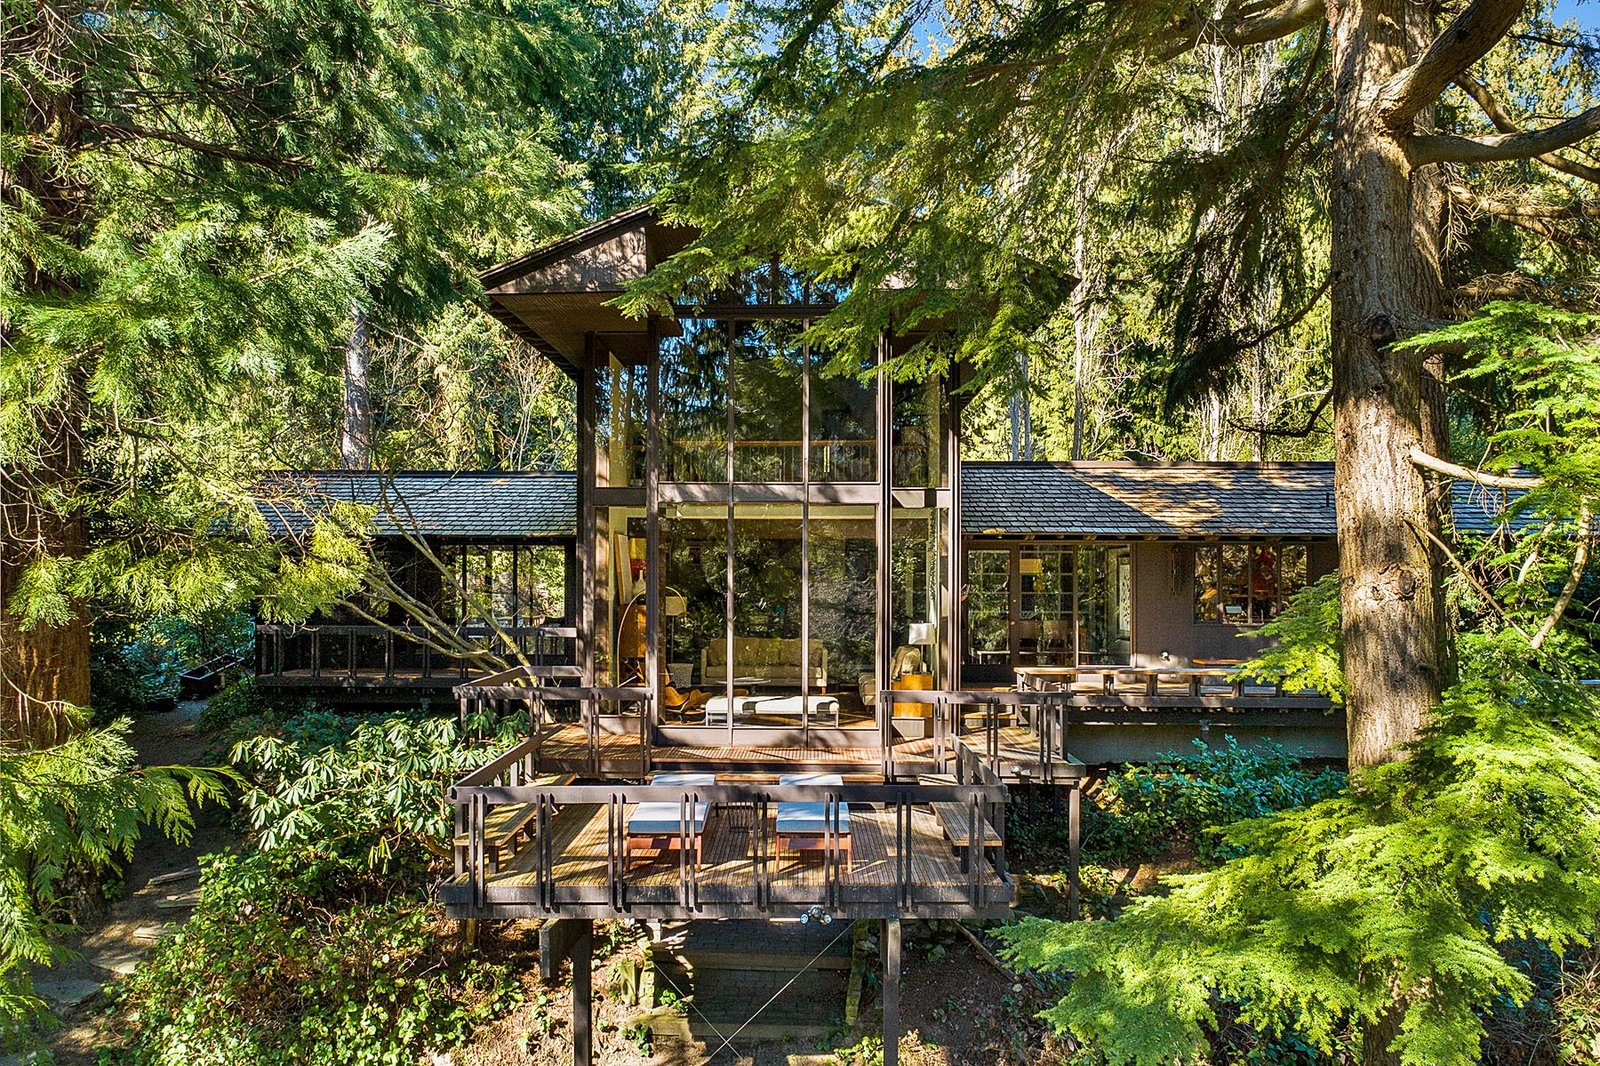 12 Midcentury Renovated Revelations You Can Find in Seattle